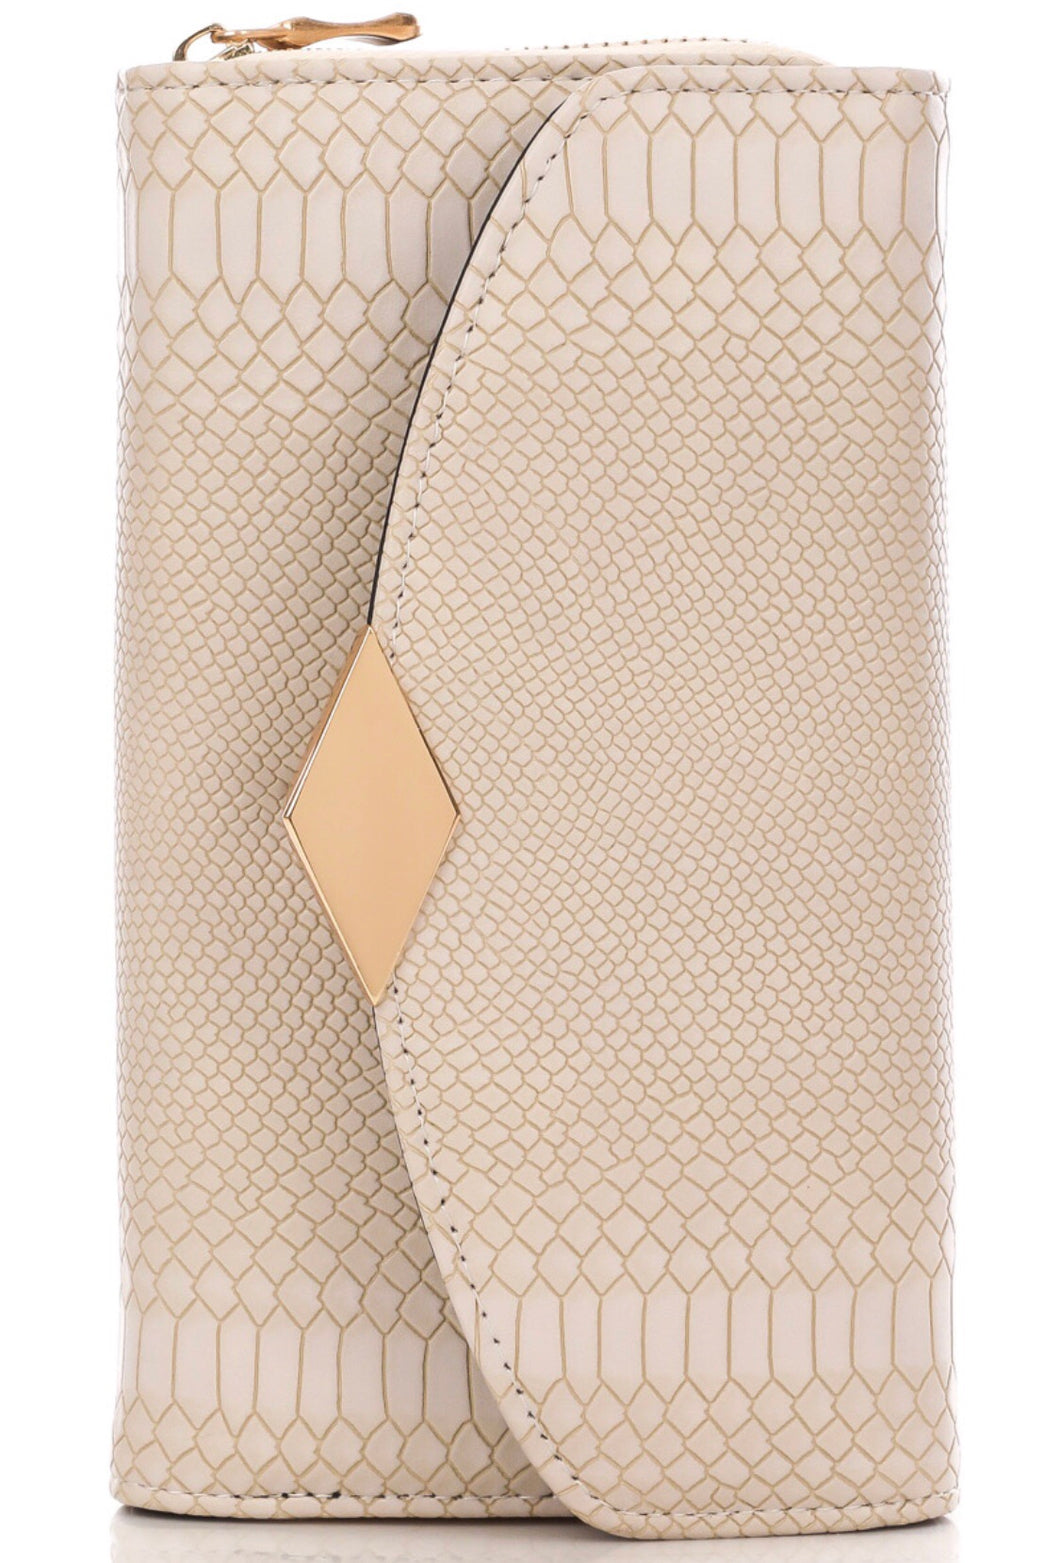 Faux Skin Wallet (Gold/Ivory) - Mcknz Boutique